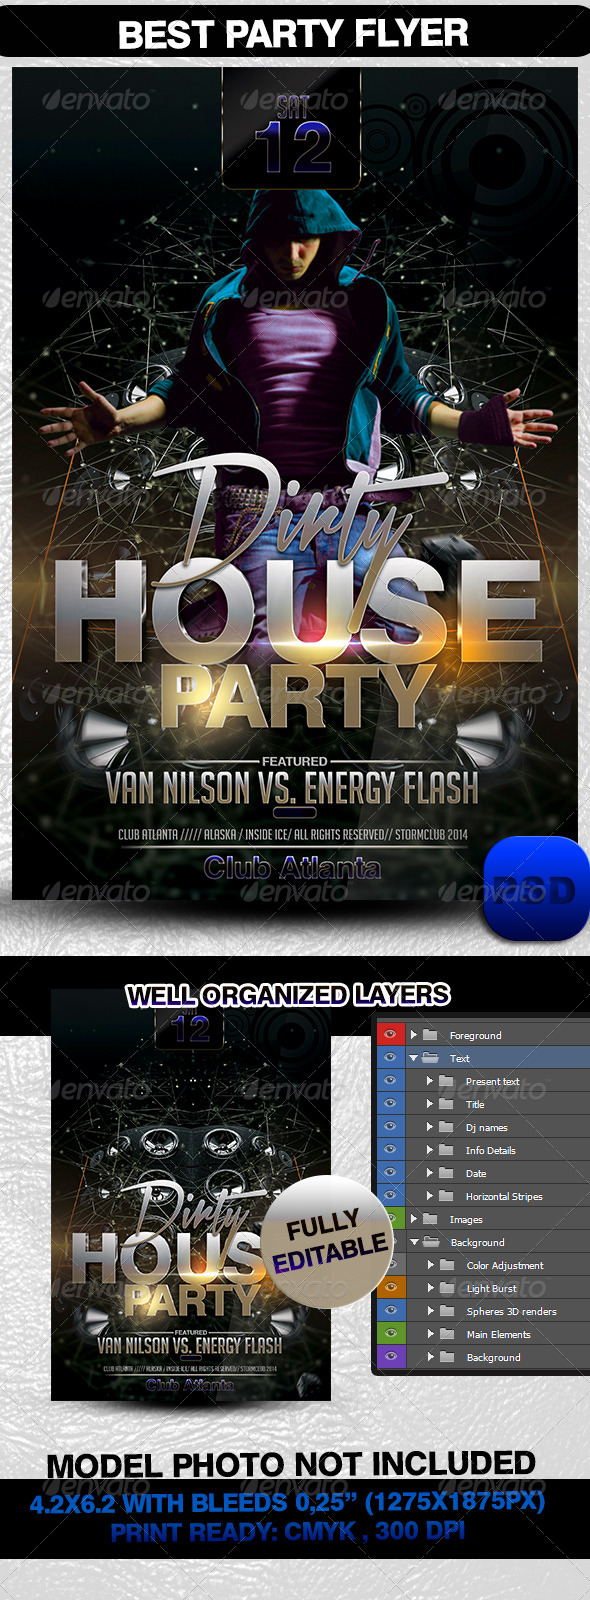 Best Party Flyer